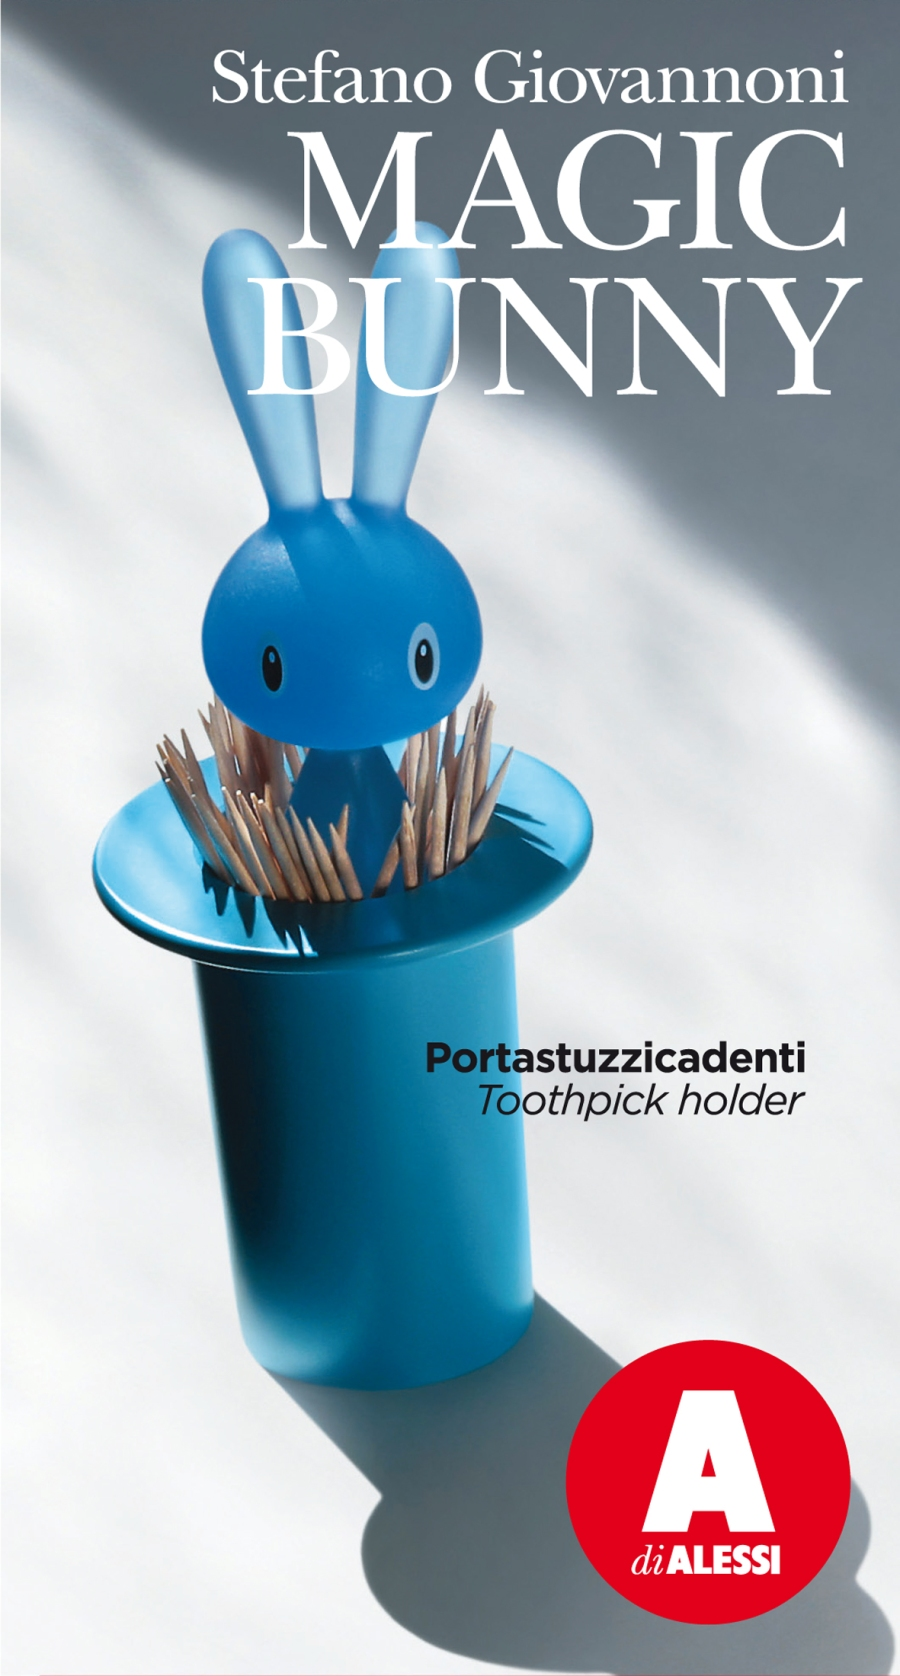 Magic bunny_Stefano Giovannoni_product